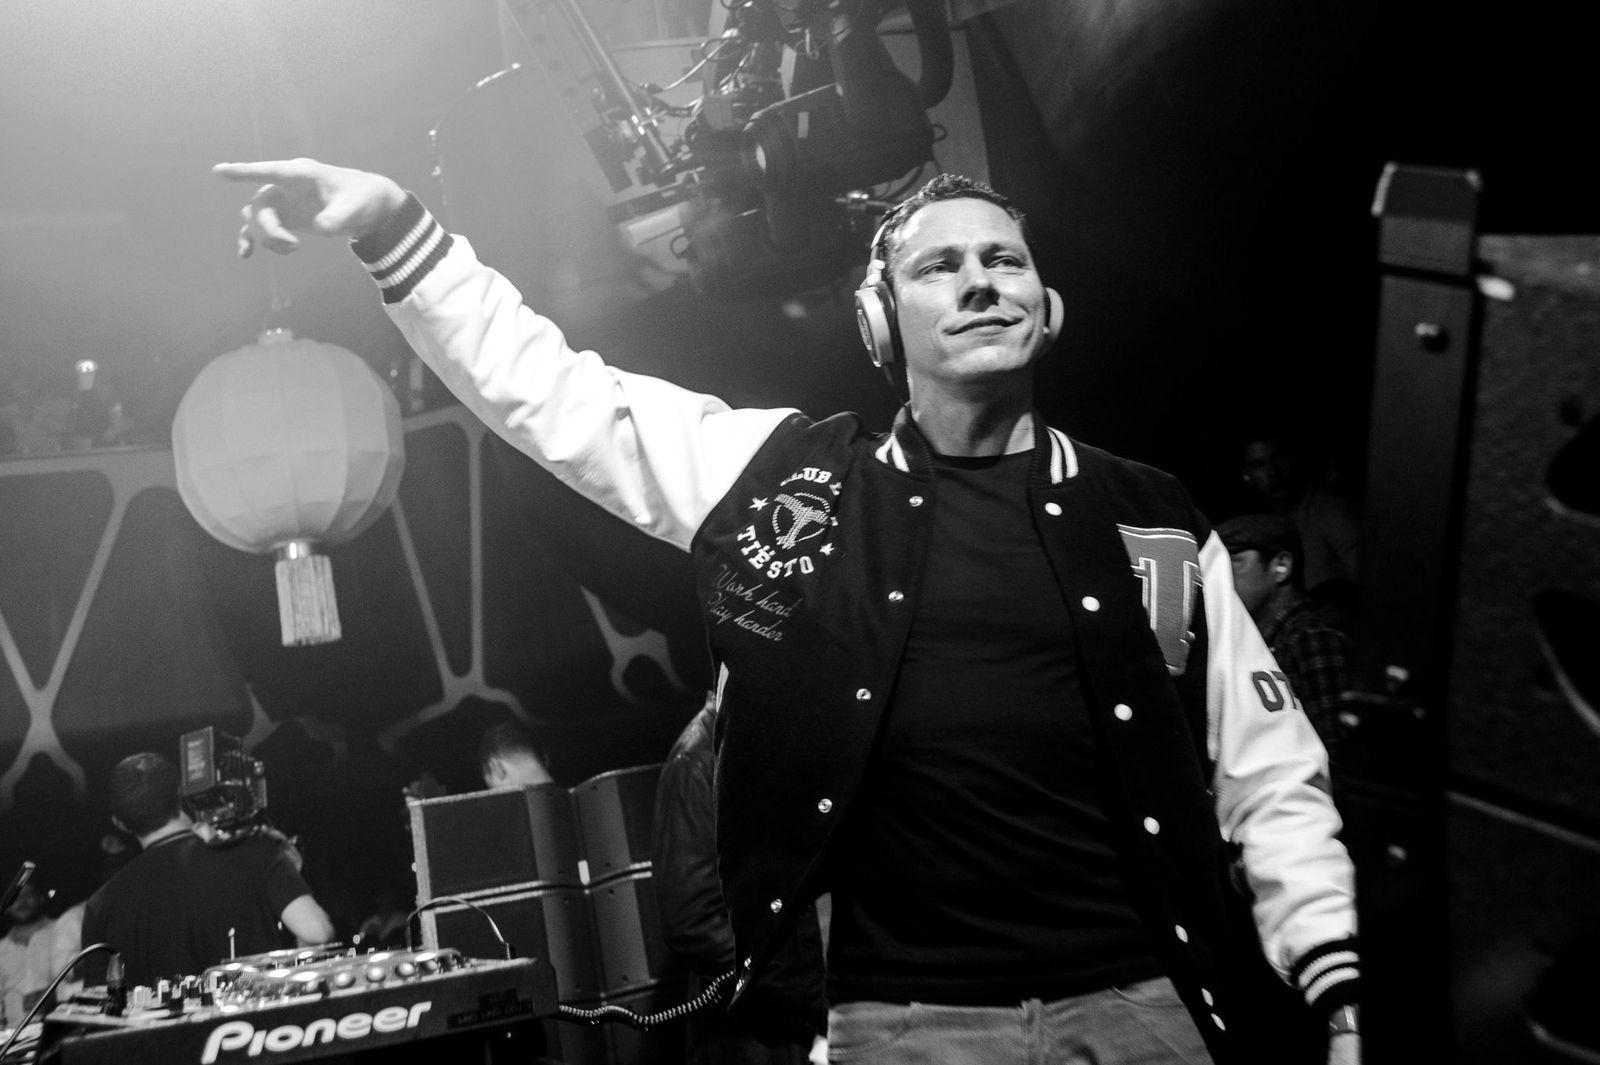 """Tiesto debuts at No. 12 on Billboard's Hot Dance/Electronic Songs chart with """"Wasted,"""